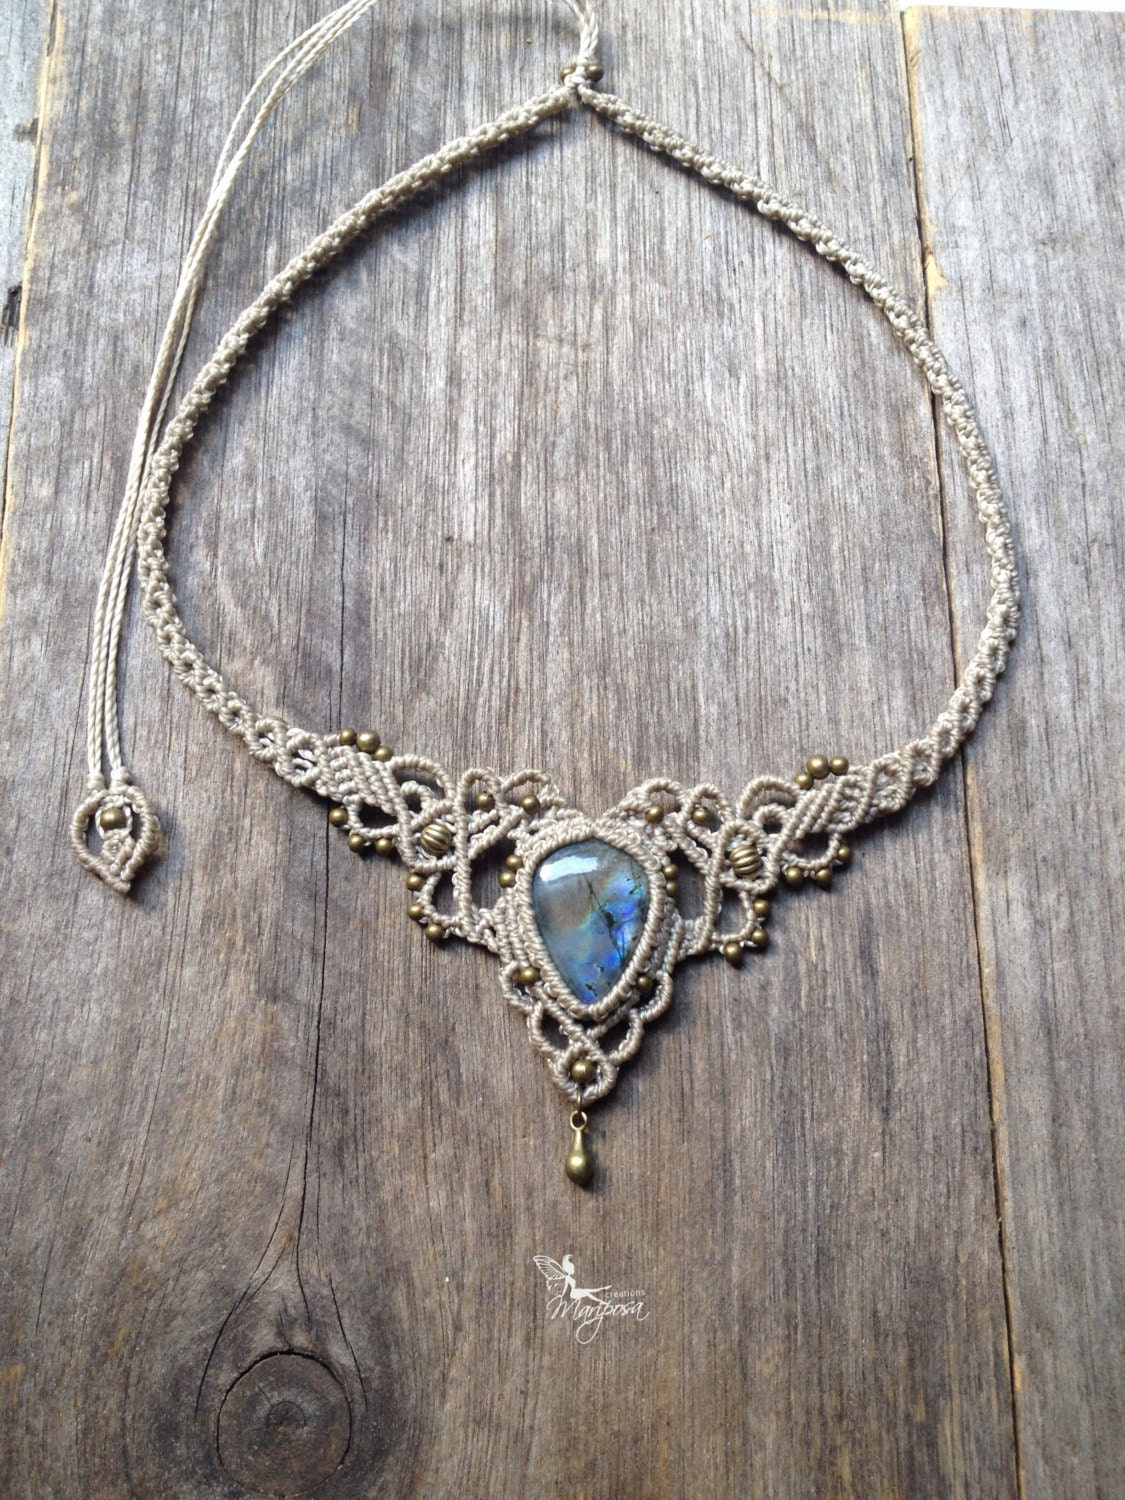 macrame necklace pattern micro macrame necklace labradorite elven tiara boho chic 6075